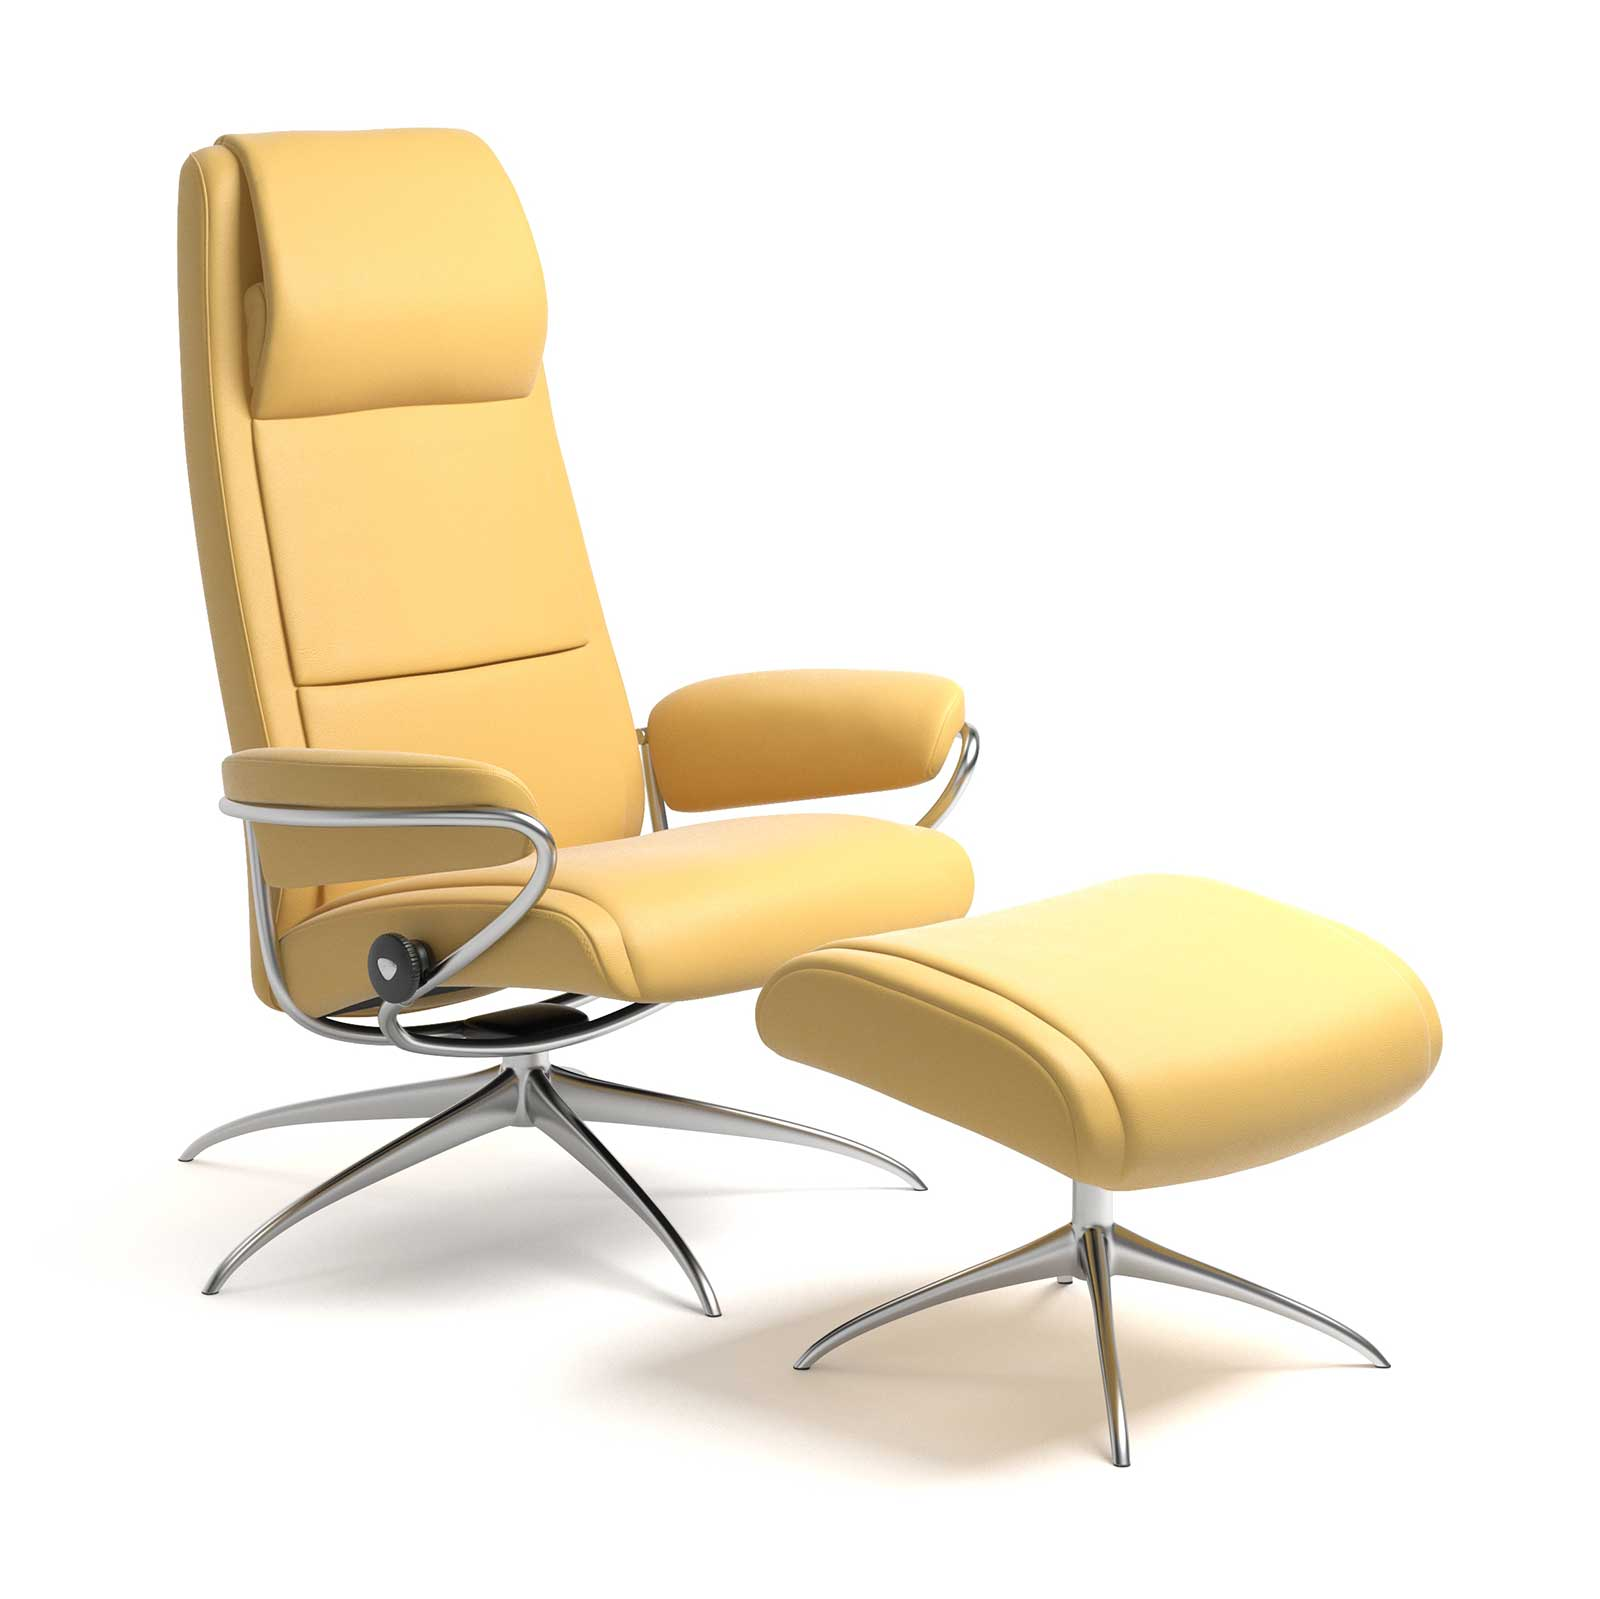 Stressless Sessel Paris High Back Stressless Paris Relaxsessel Batick Mimosa Mit Hoher Lehne